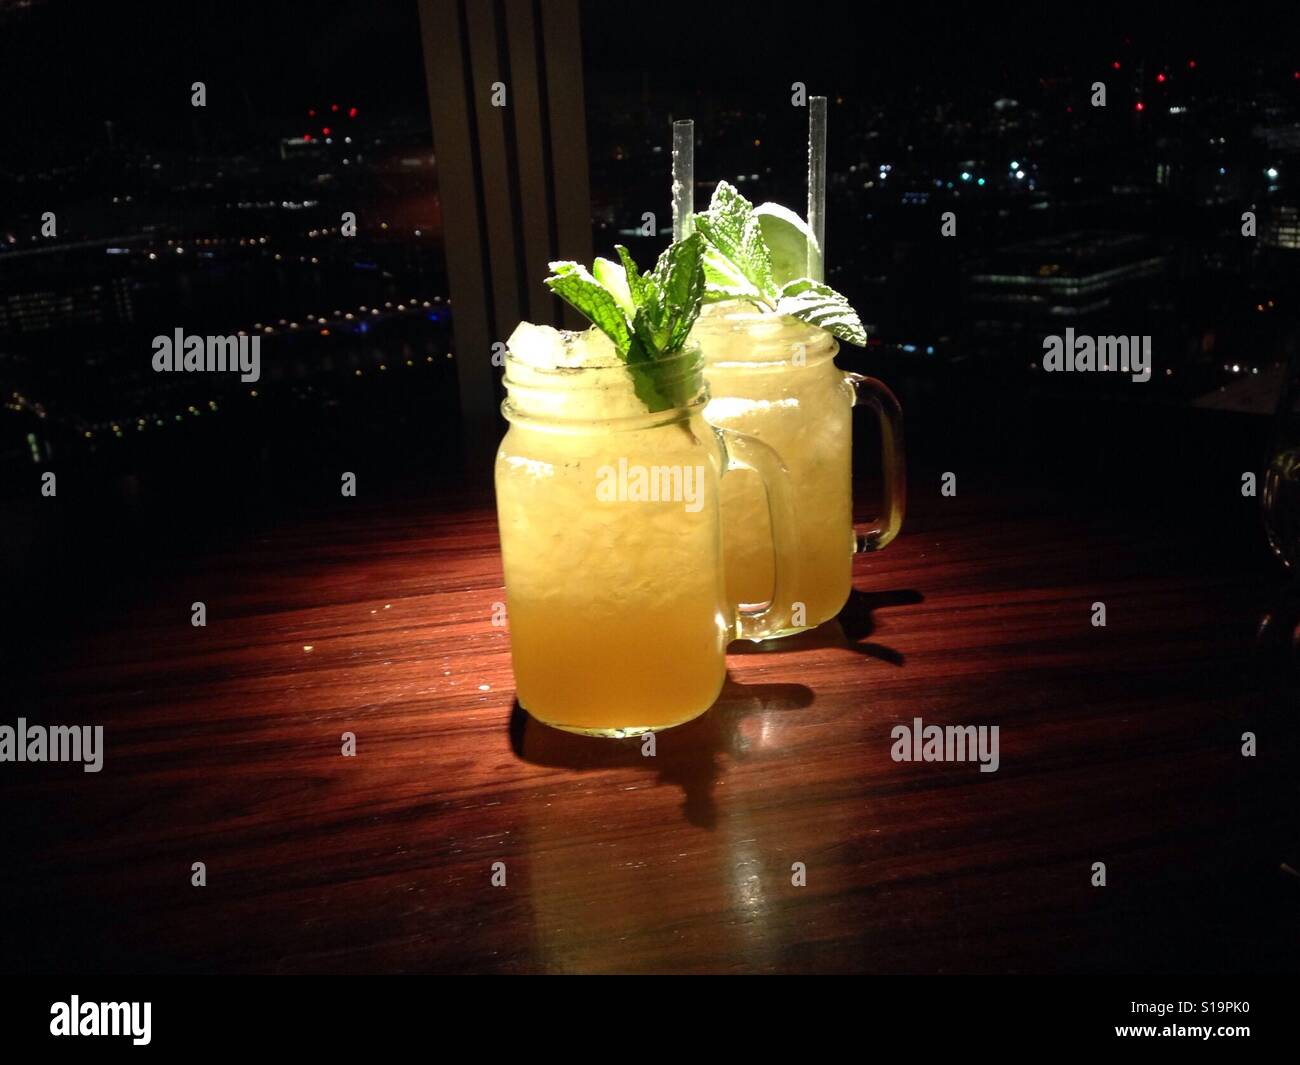 Gin cocktails under light at nighttime in London - Stock Image